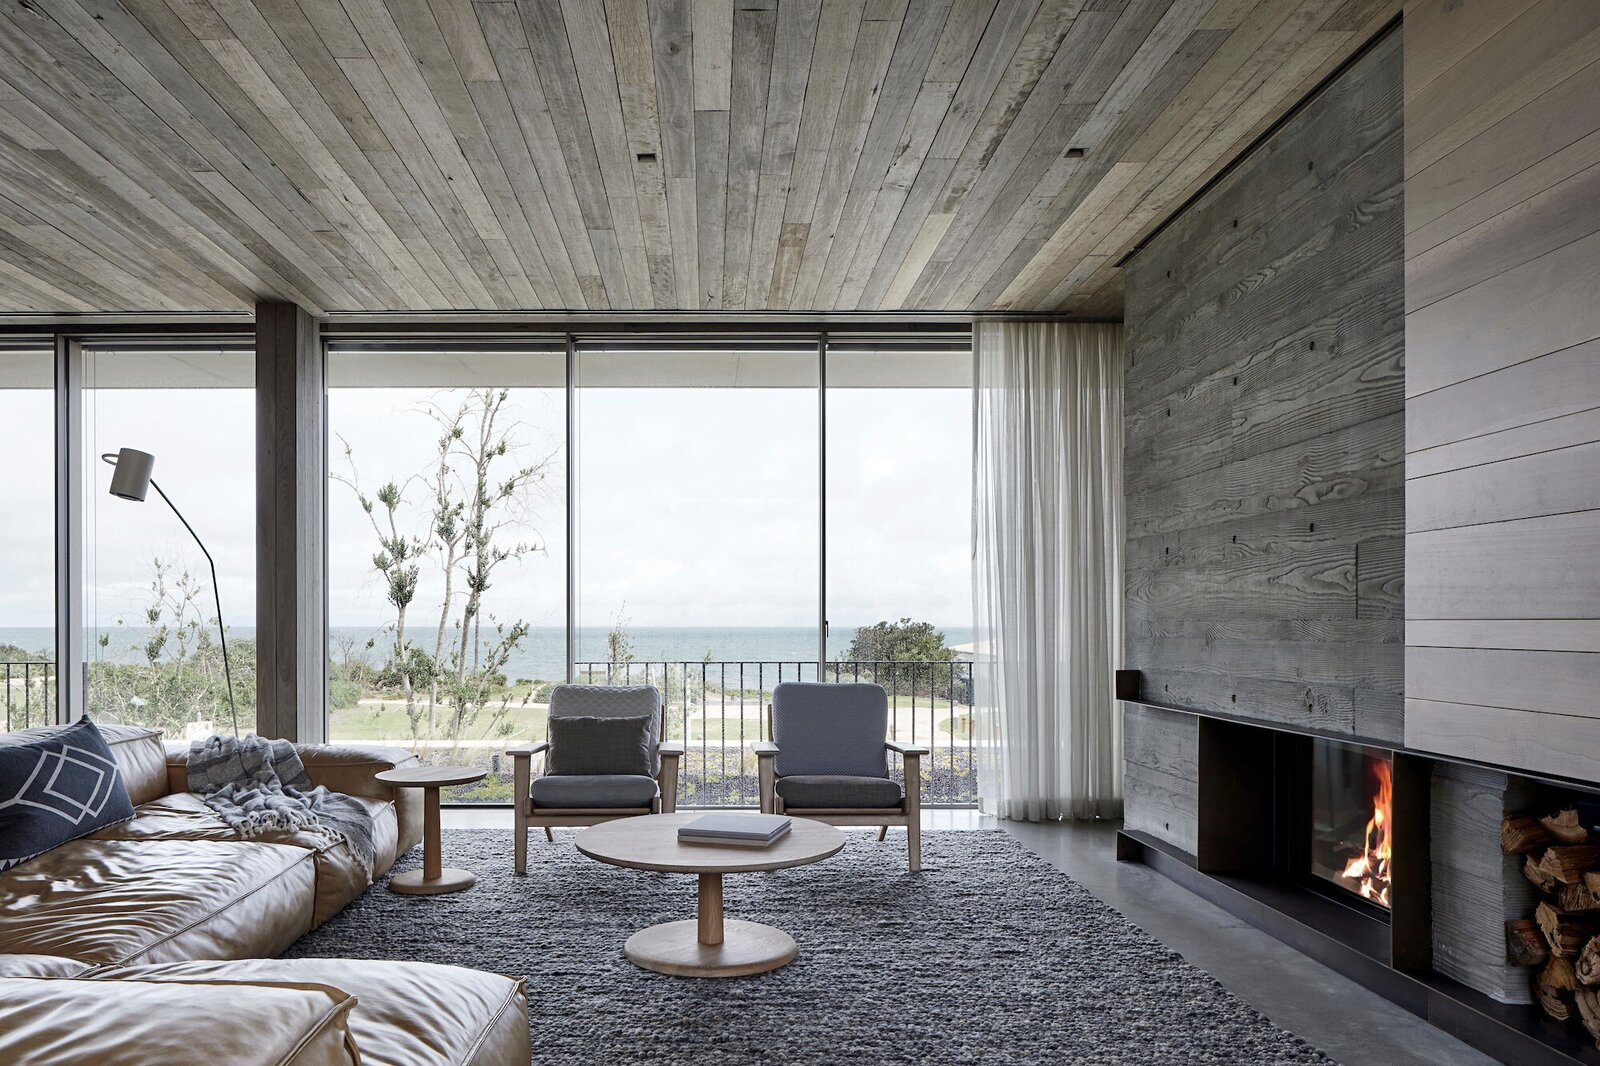 Living room of Silver Linings by Rachcoff Vella Architects.